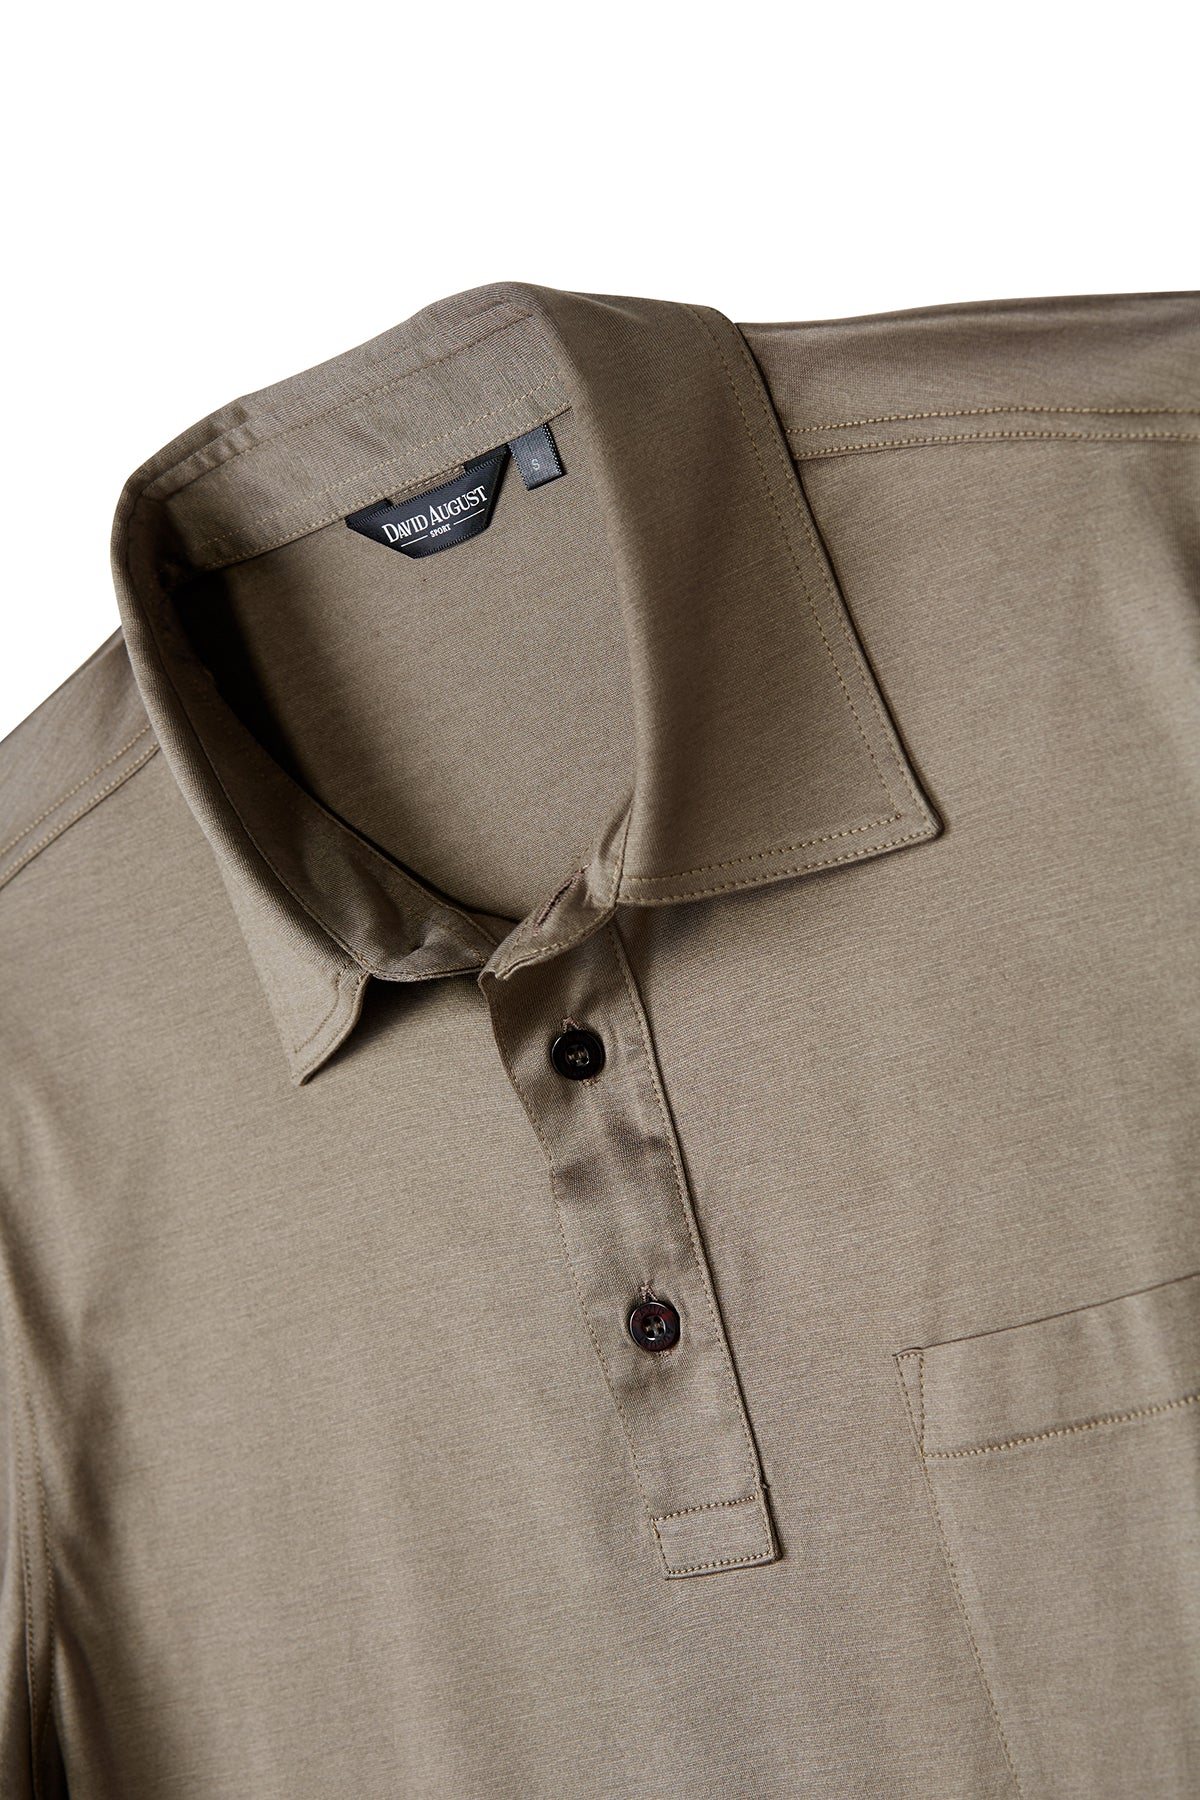 David August Mercerized Cotton Dark Tan Polo